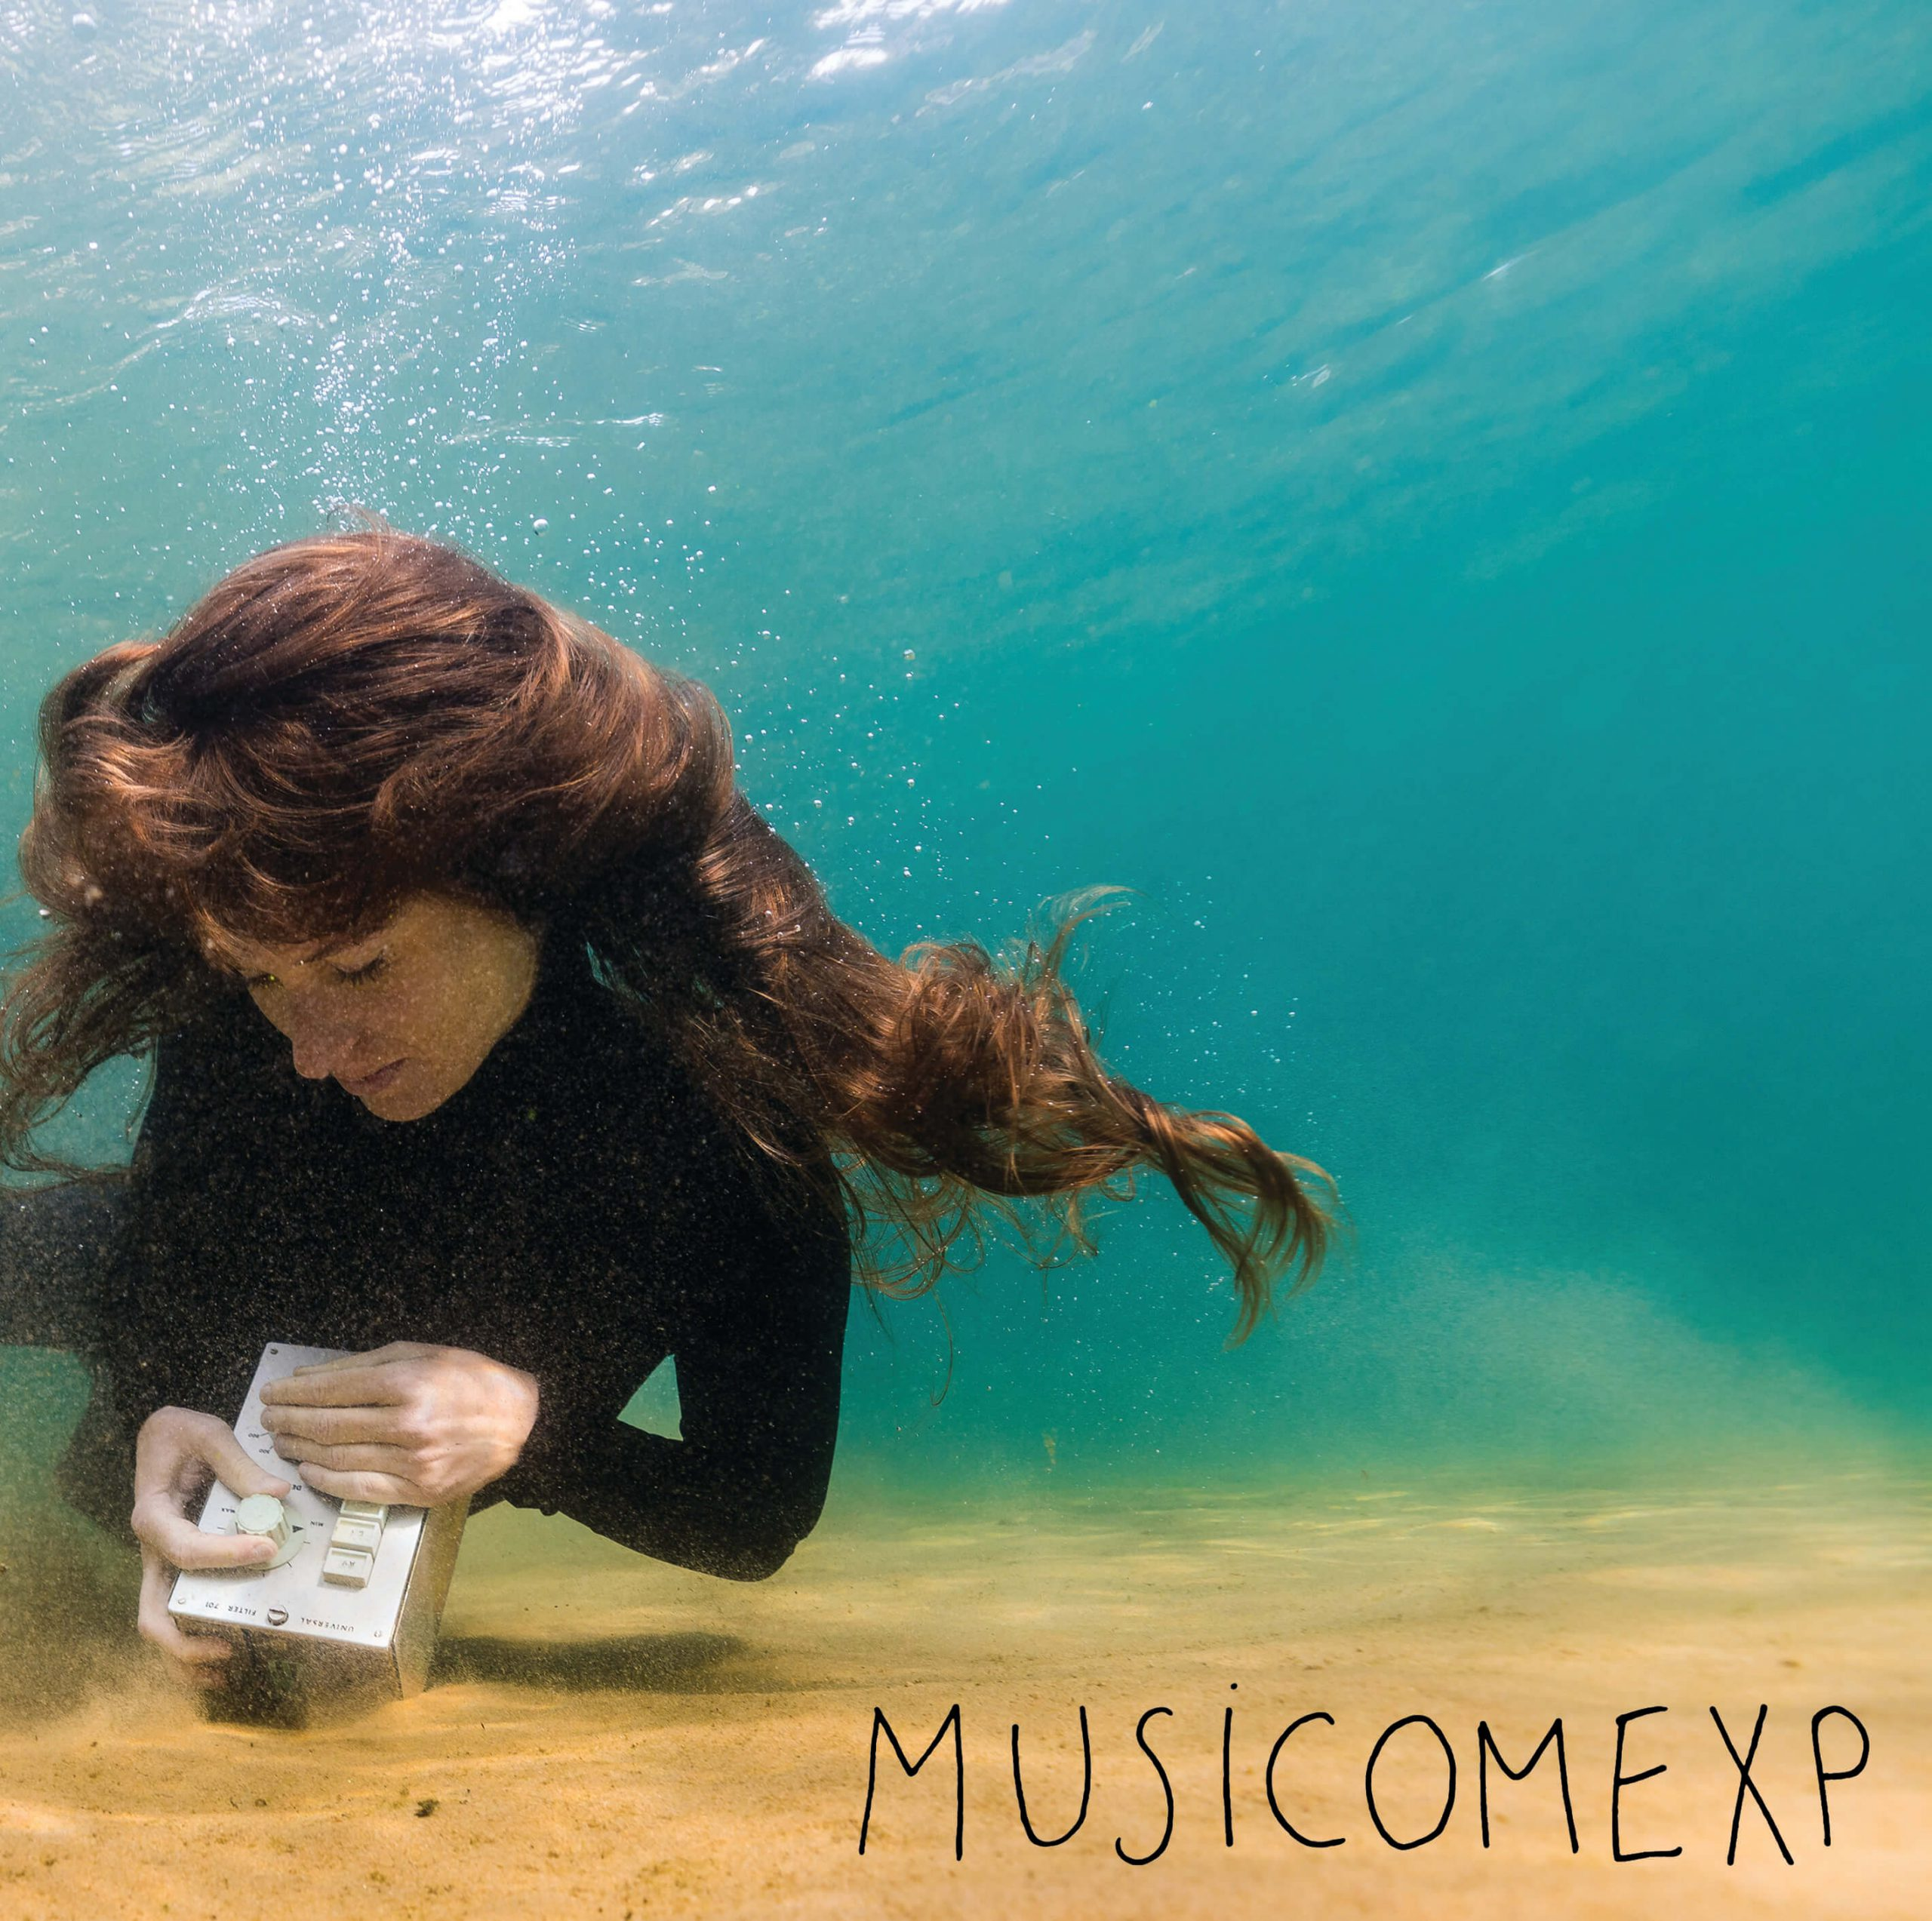 MUSICOMEXP - A Musician on board the Ocean Mapping Expedition (2019)